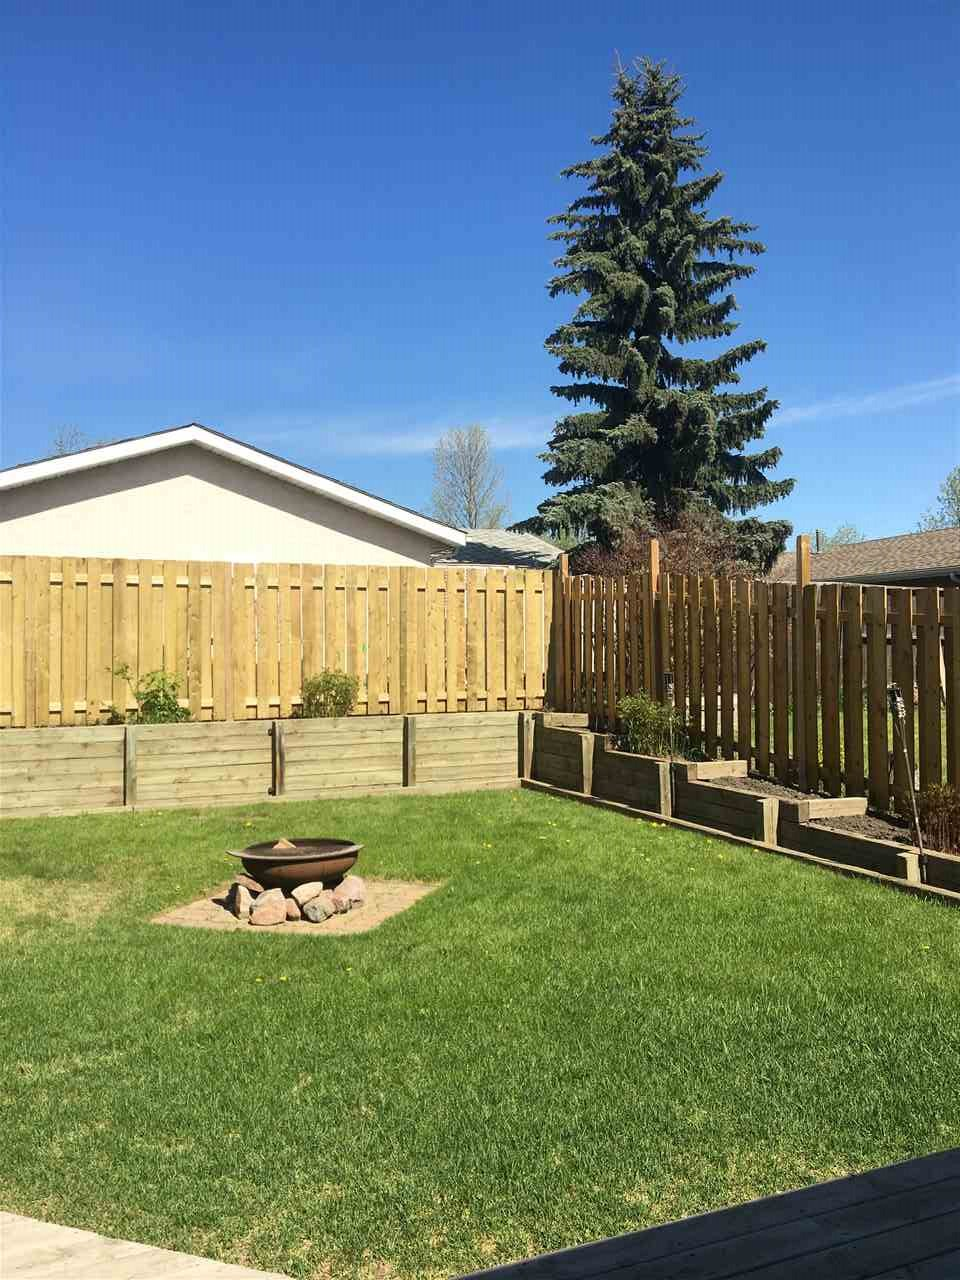 The back yard was leveled out to make the space more useable. Wooden planters around the yard allow you to decide... flowers or vegetables? The low deck is extensive to hold your yard furniture.